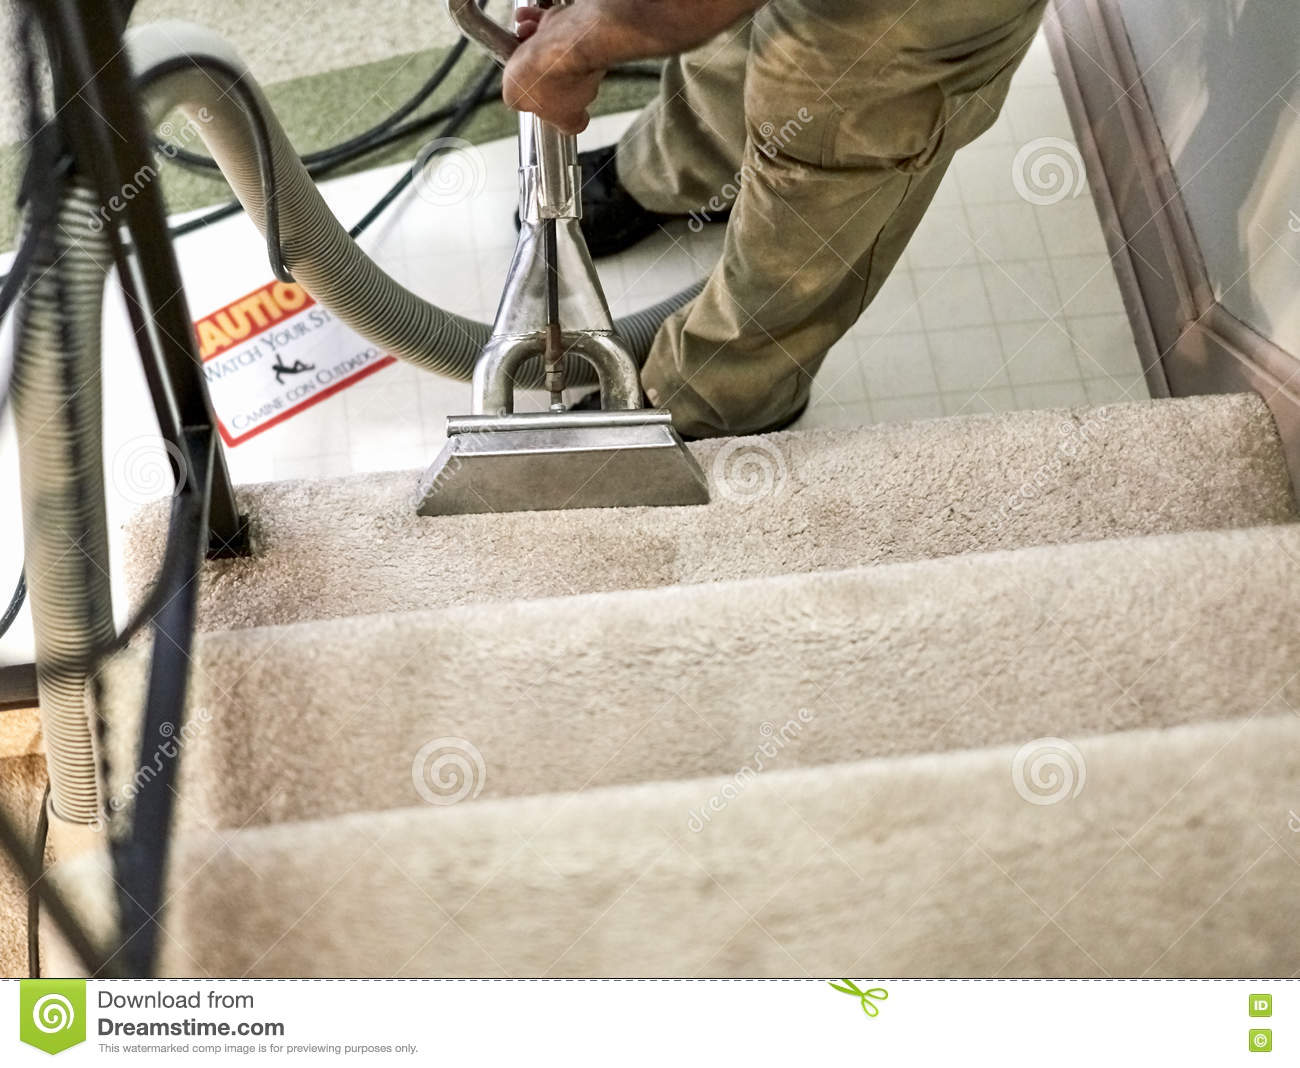 Professional carpet cleaner workin on the stairs stock for House cleaning stock photos